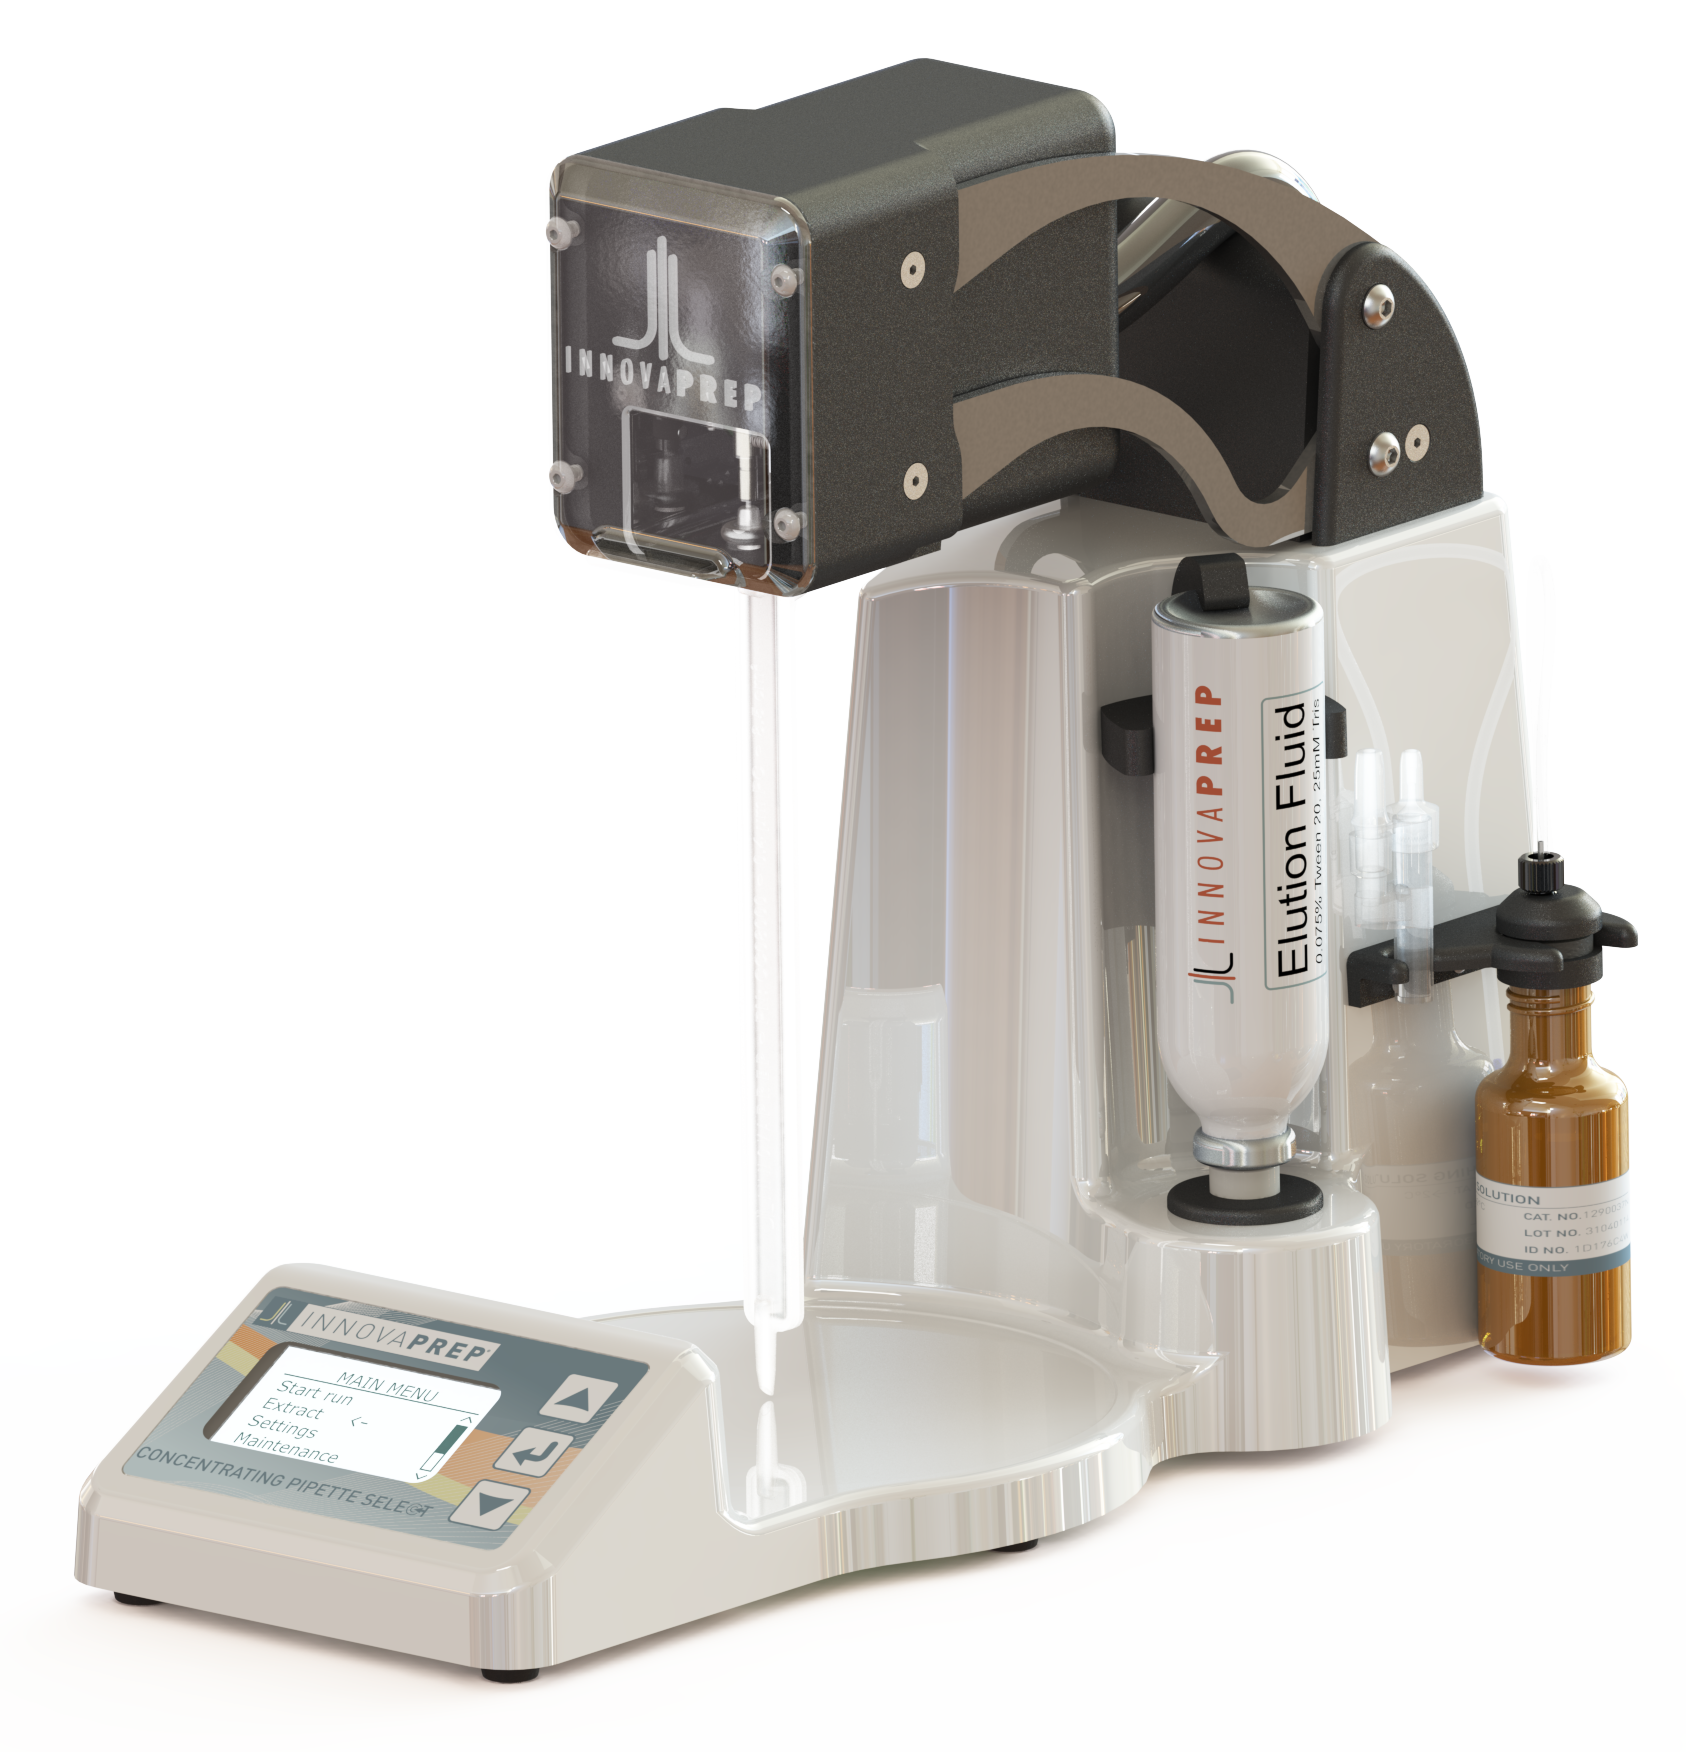 CP Select, CP150, Rapid Concentration, Rapid Liquid Sampler, Preanalytical Tool for Microbiology, Wet Foam Elution, Novel Elution Process, Patented Wet Foam Elution, Rapid Detection with Wet Foam Elution